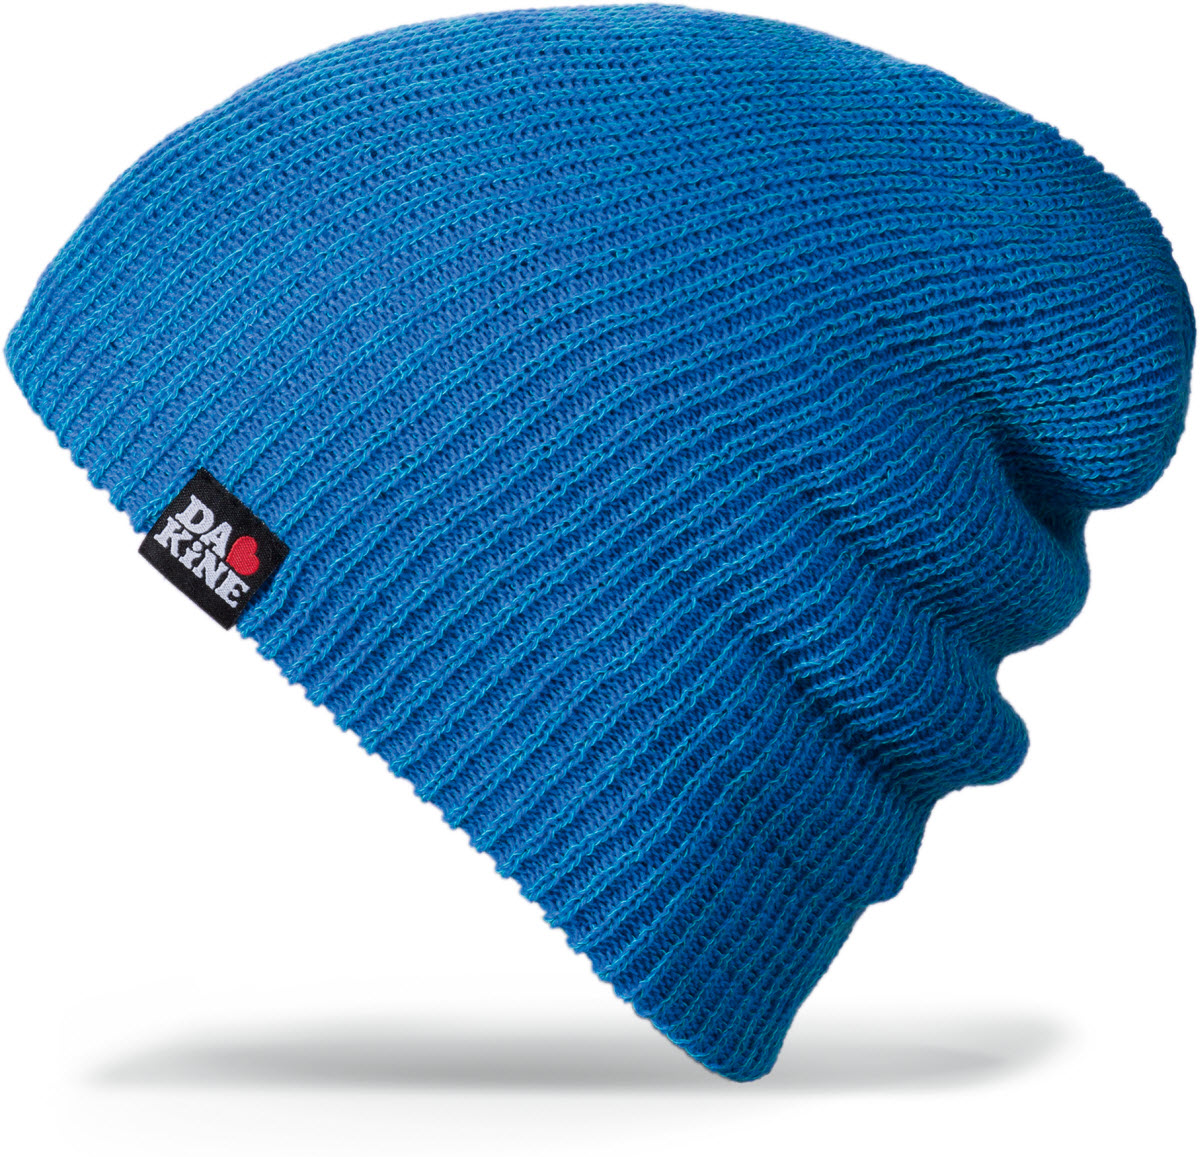 Product image of Dakine Womens Morgan Beanie Hat in Turquoise Mix